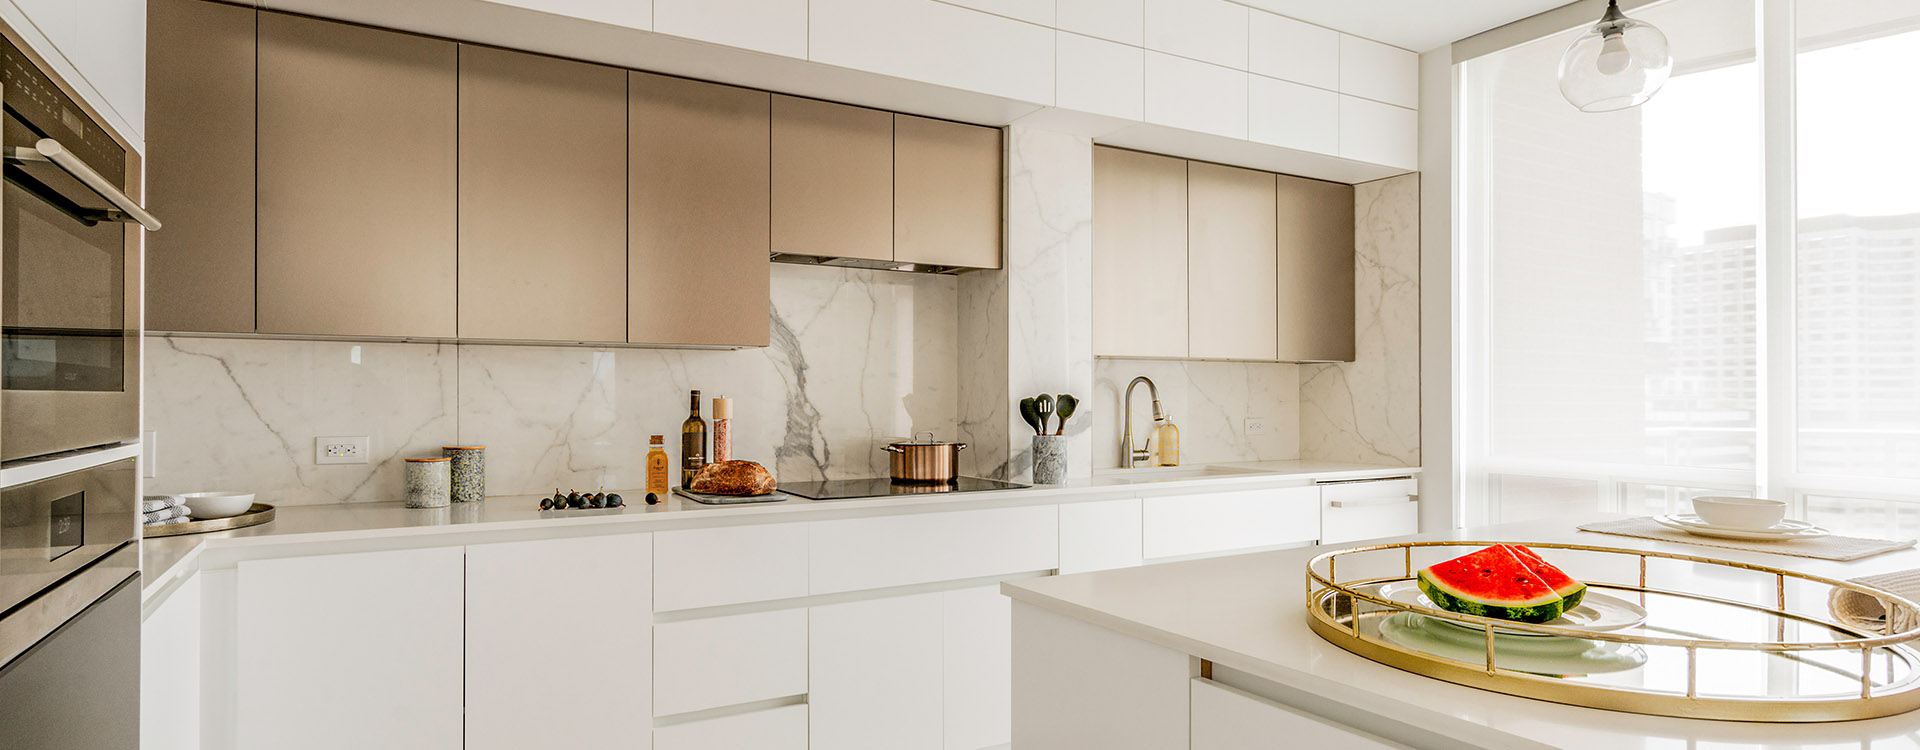 Modern kitchen at Yorville furnished suites in Toronto. Rent with Minto Apartments.